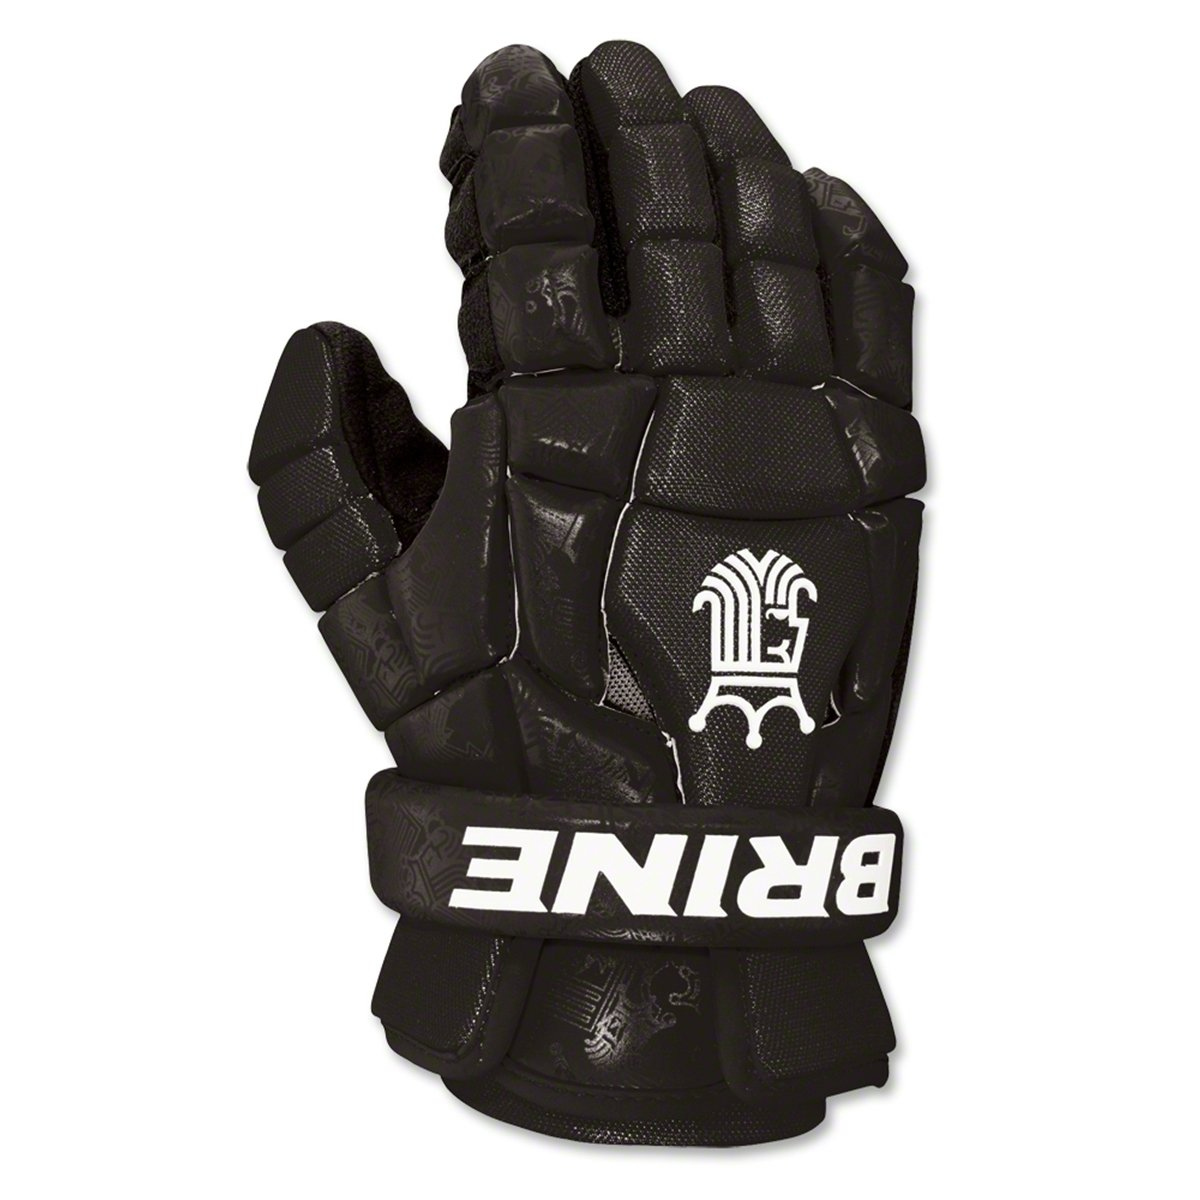 The Best Lacrosse Gloves 1